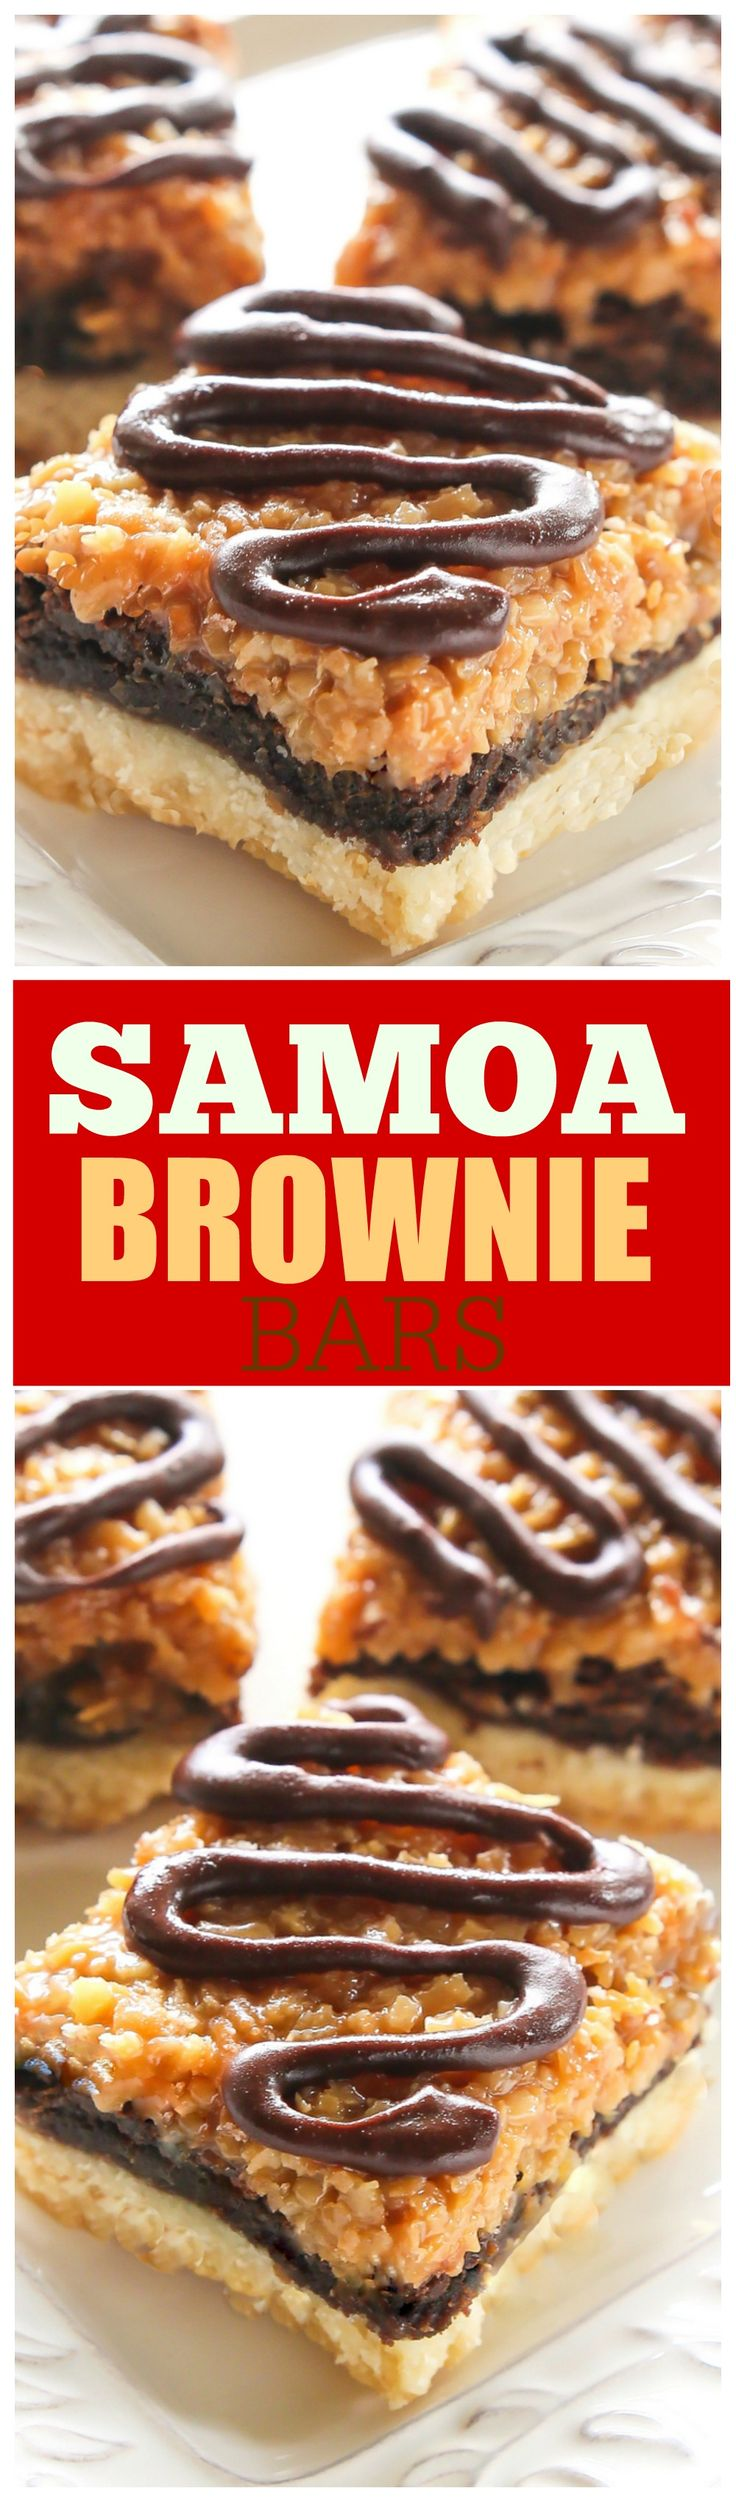 Samoa Brownie Bars - A shortbread crust topped with a brownie layer and caramel coconut inspired by the girl scout cookie. the-girl-who-ate-everything.com